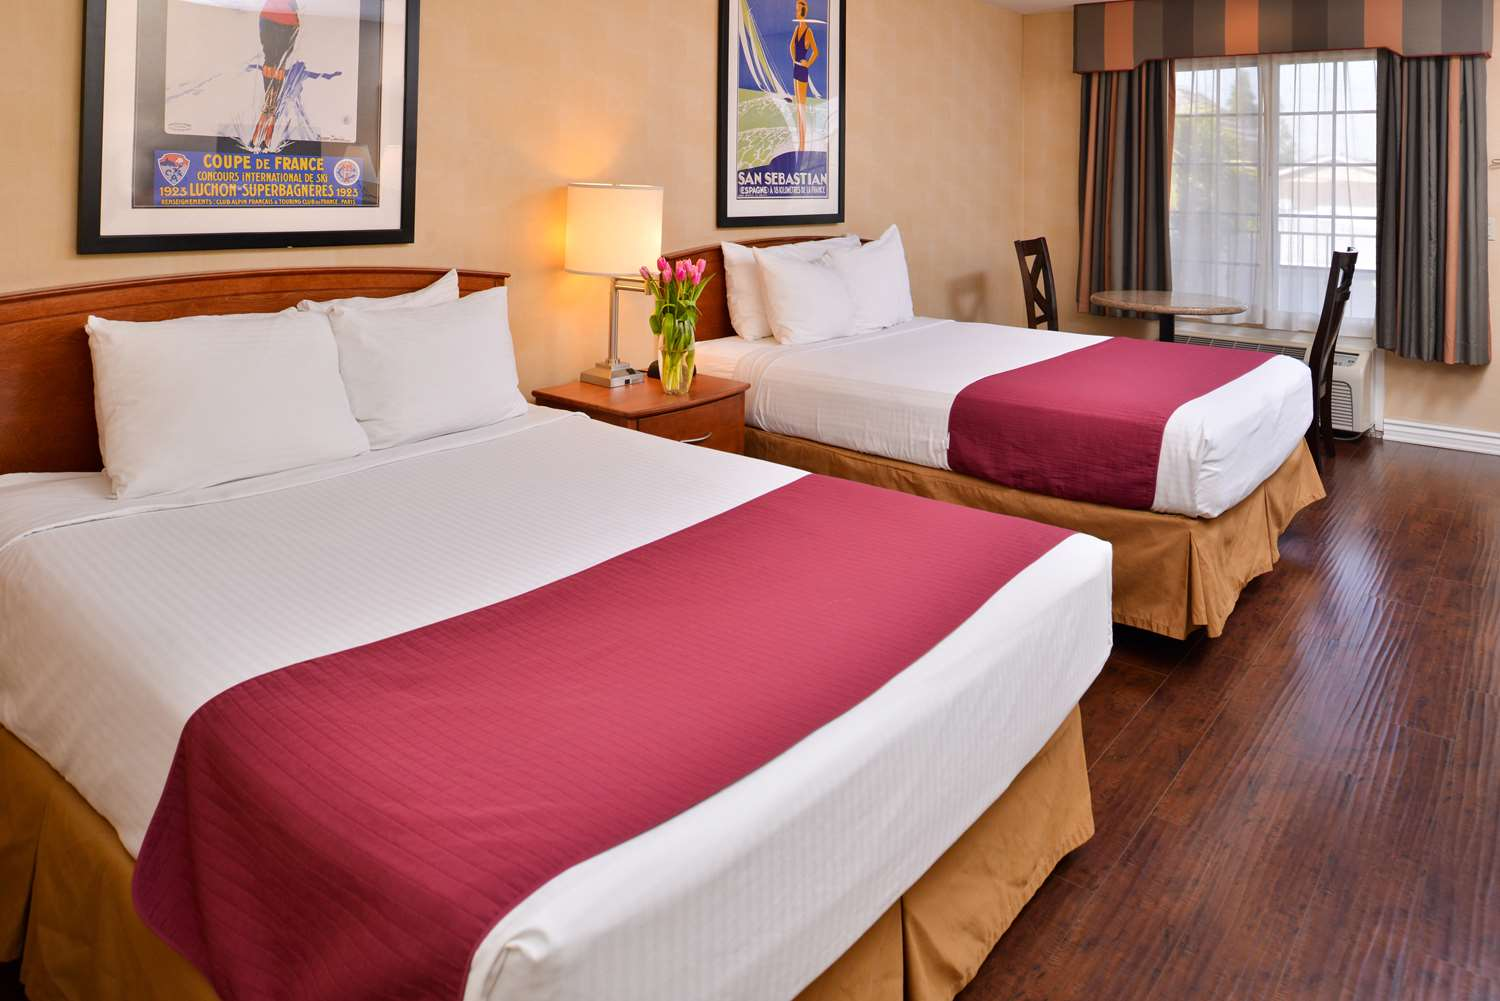 Welcome To The Best Western Palm Garden Inn. We Hope You Enjoy Your Stay In  This Double Queen Guest Room!